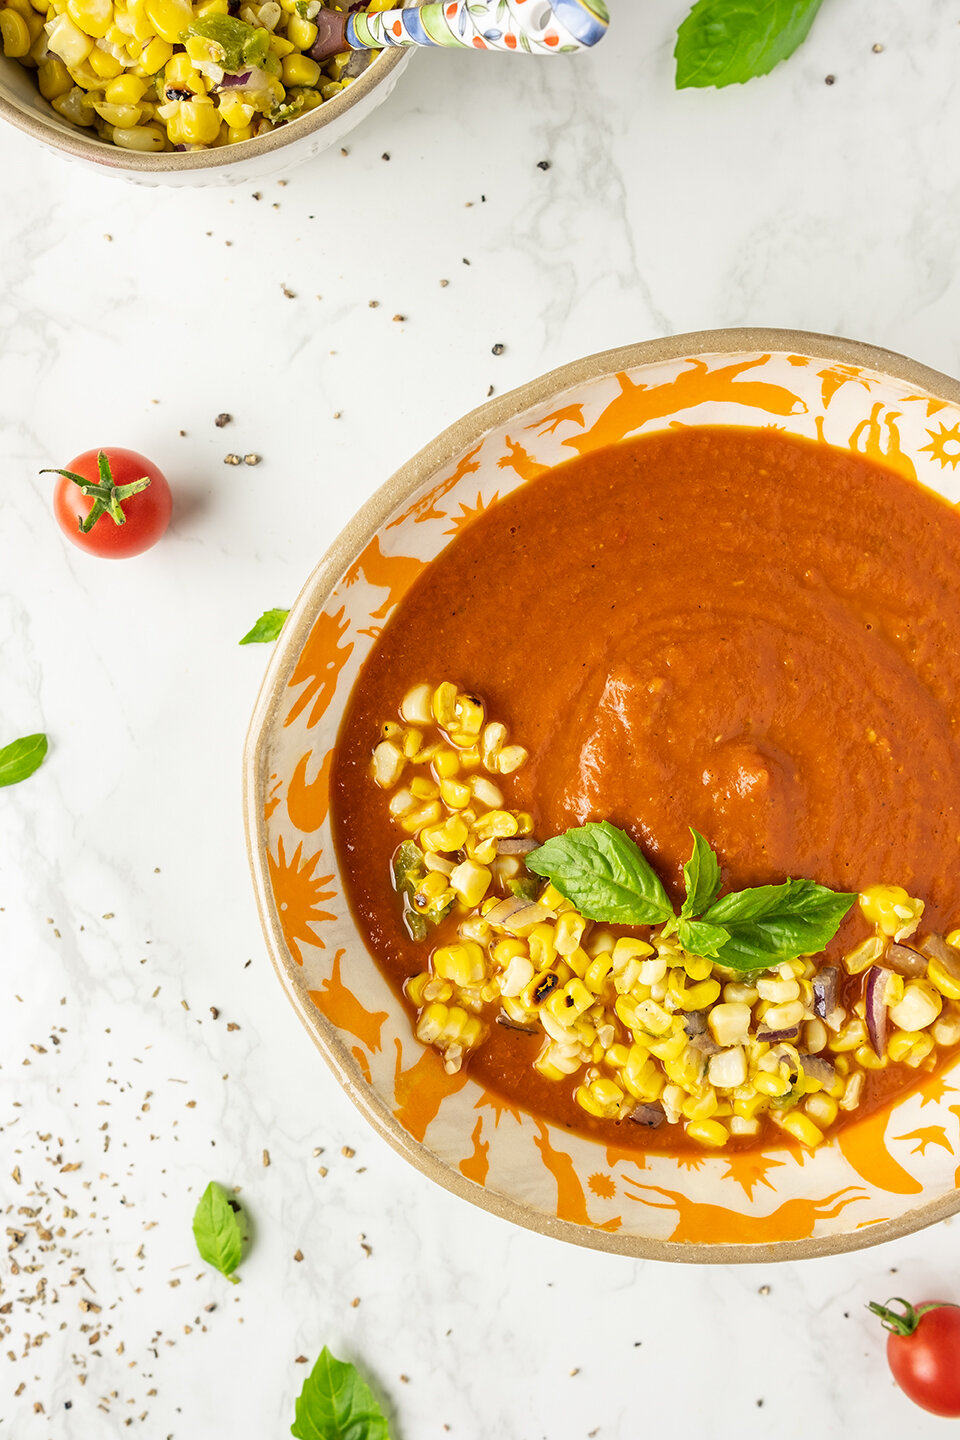 Fresh Tomato Soup with Corn Relish on a marble background. Tomatoes and basil in the background.  Bowl of corn relish with small spoon.